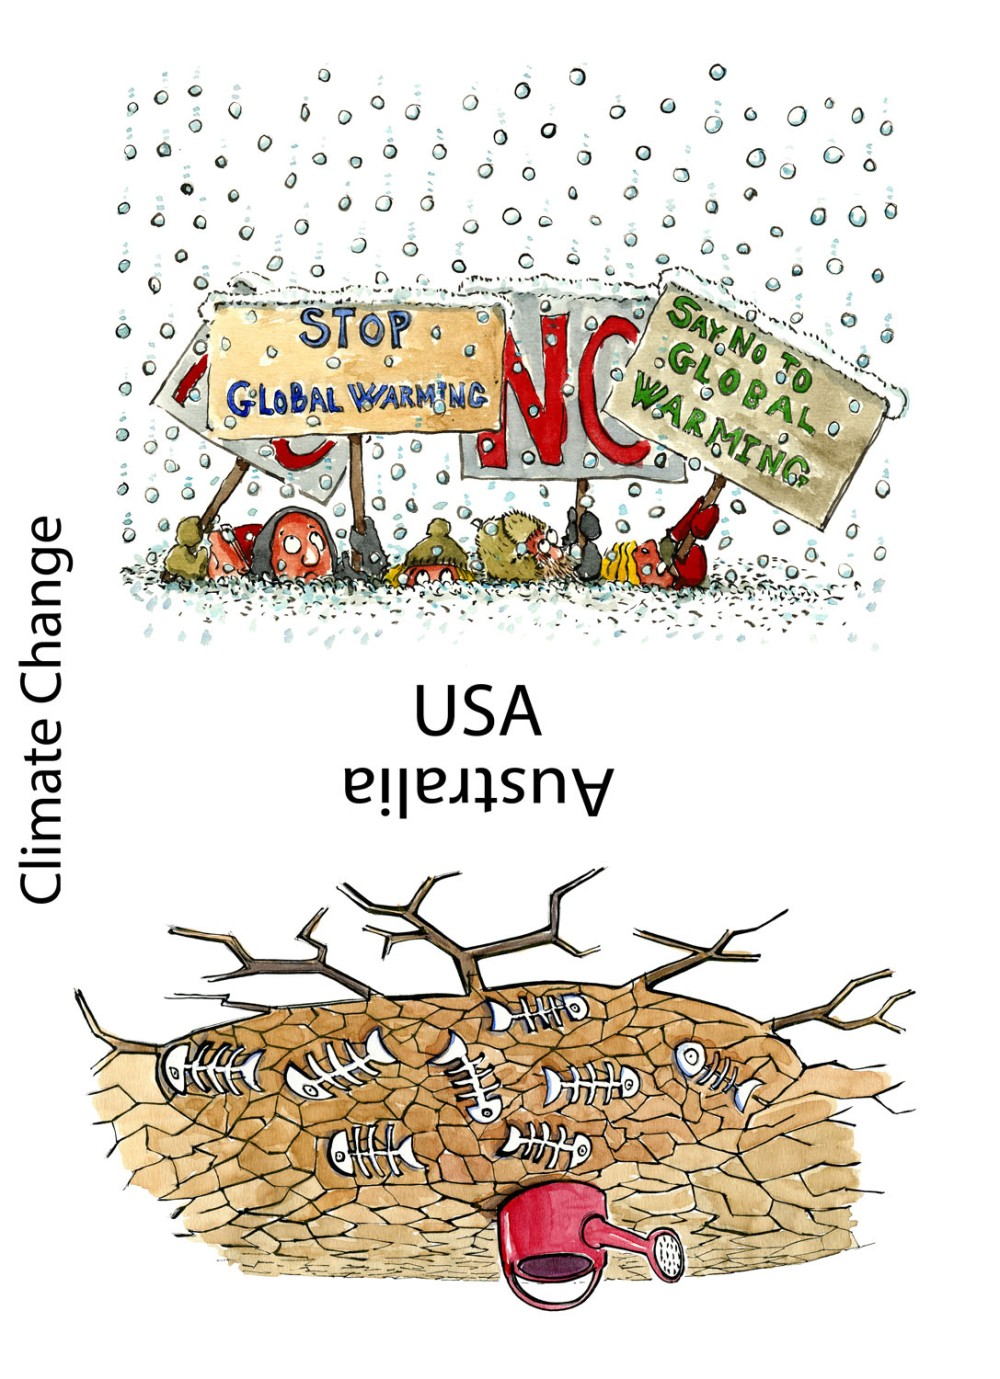 USA and Australia facing extreme weather